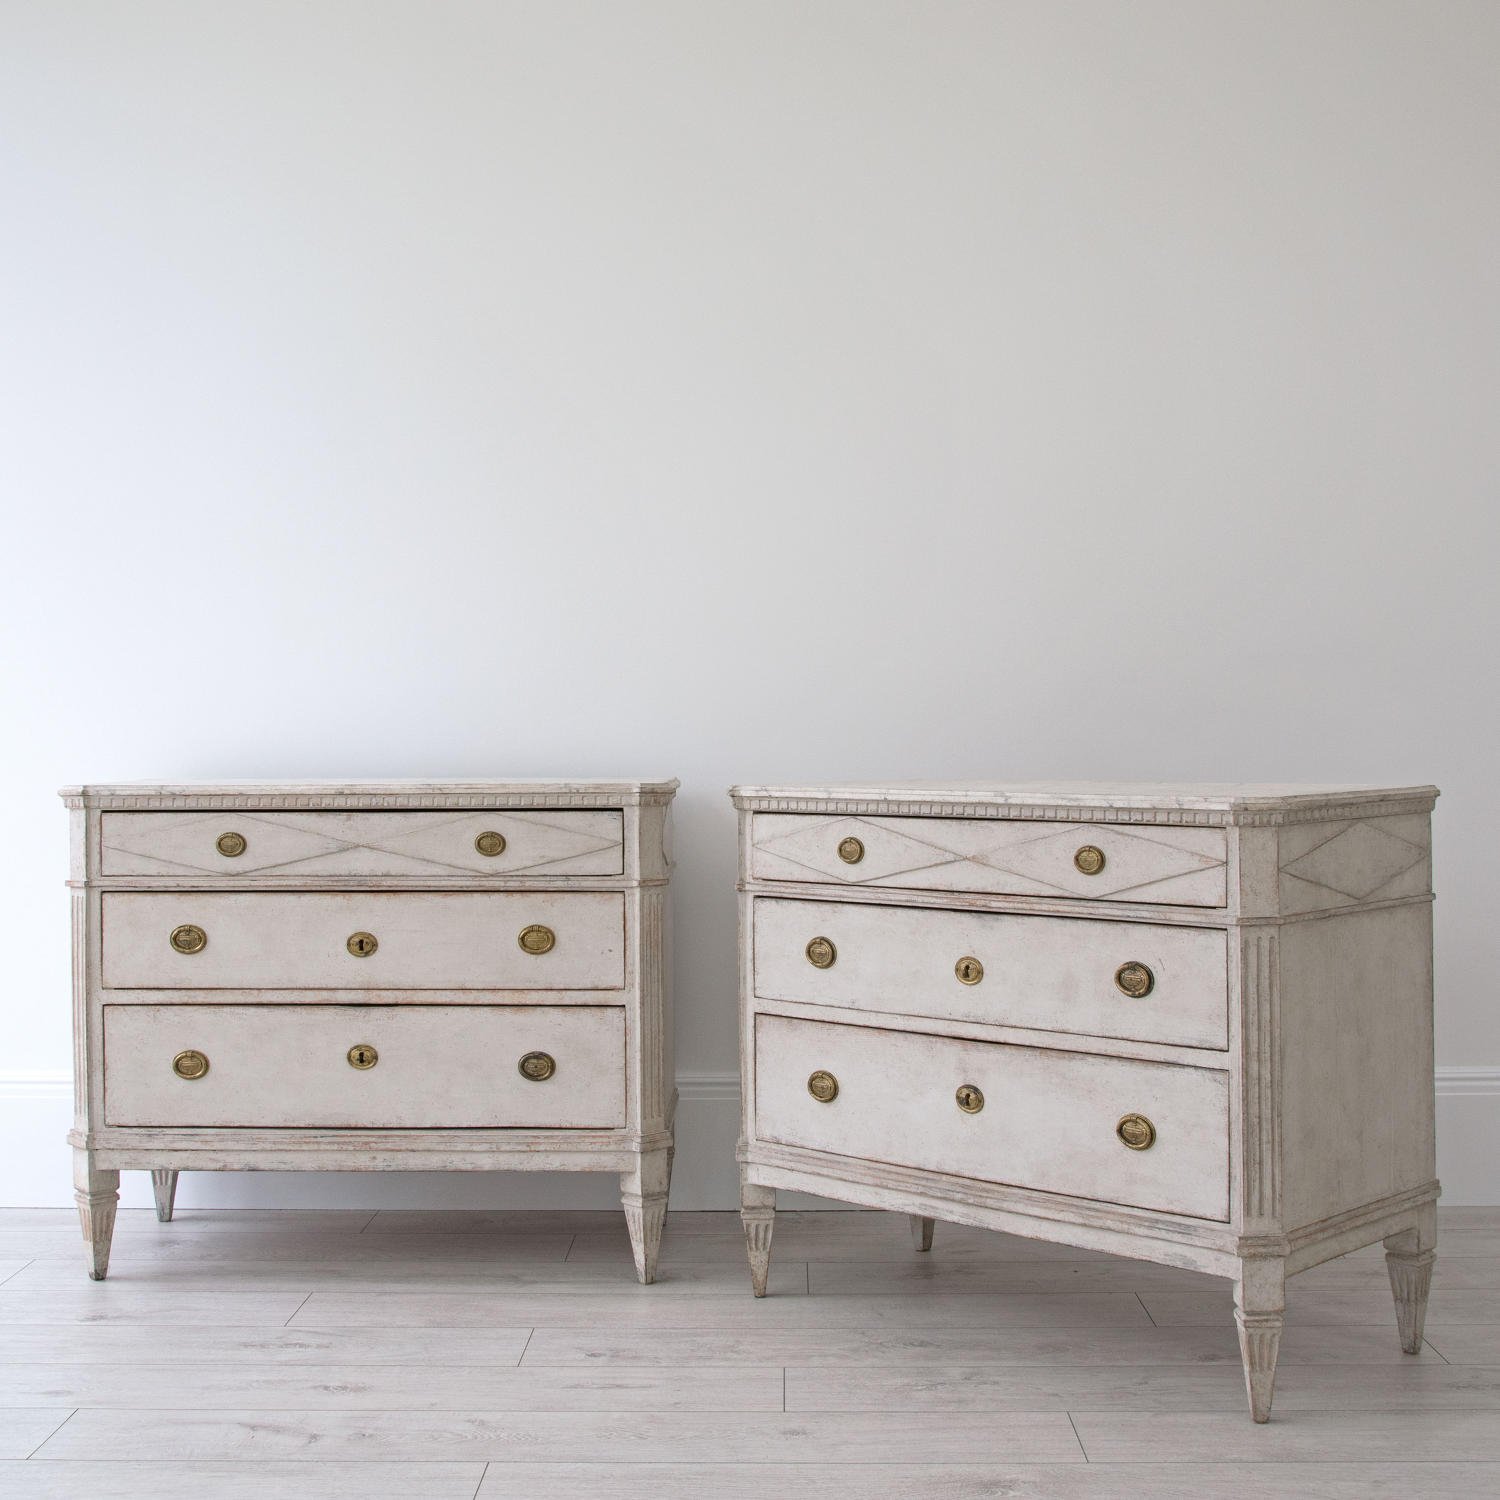 STUNNING PAIR OF SWEDISH GUSTAVIAN STYLE CHESTS